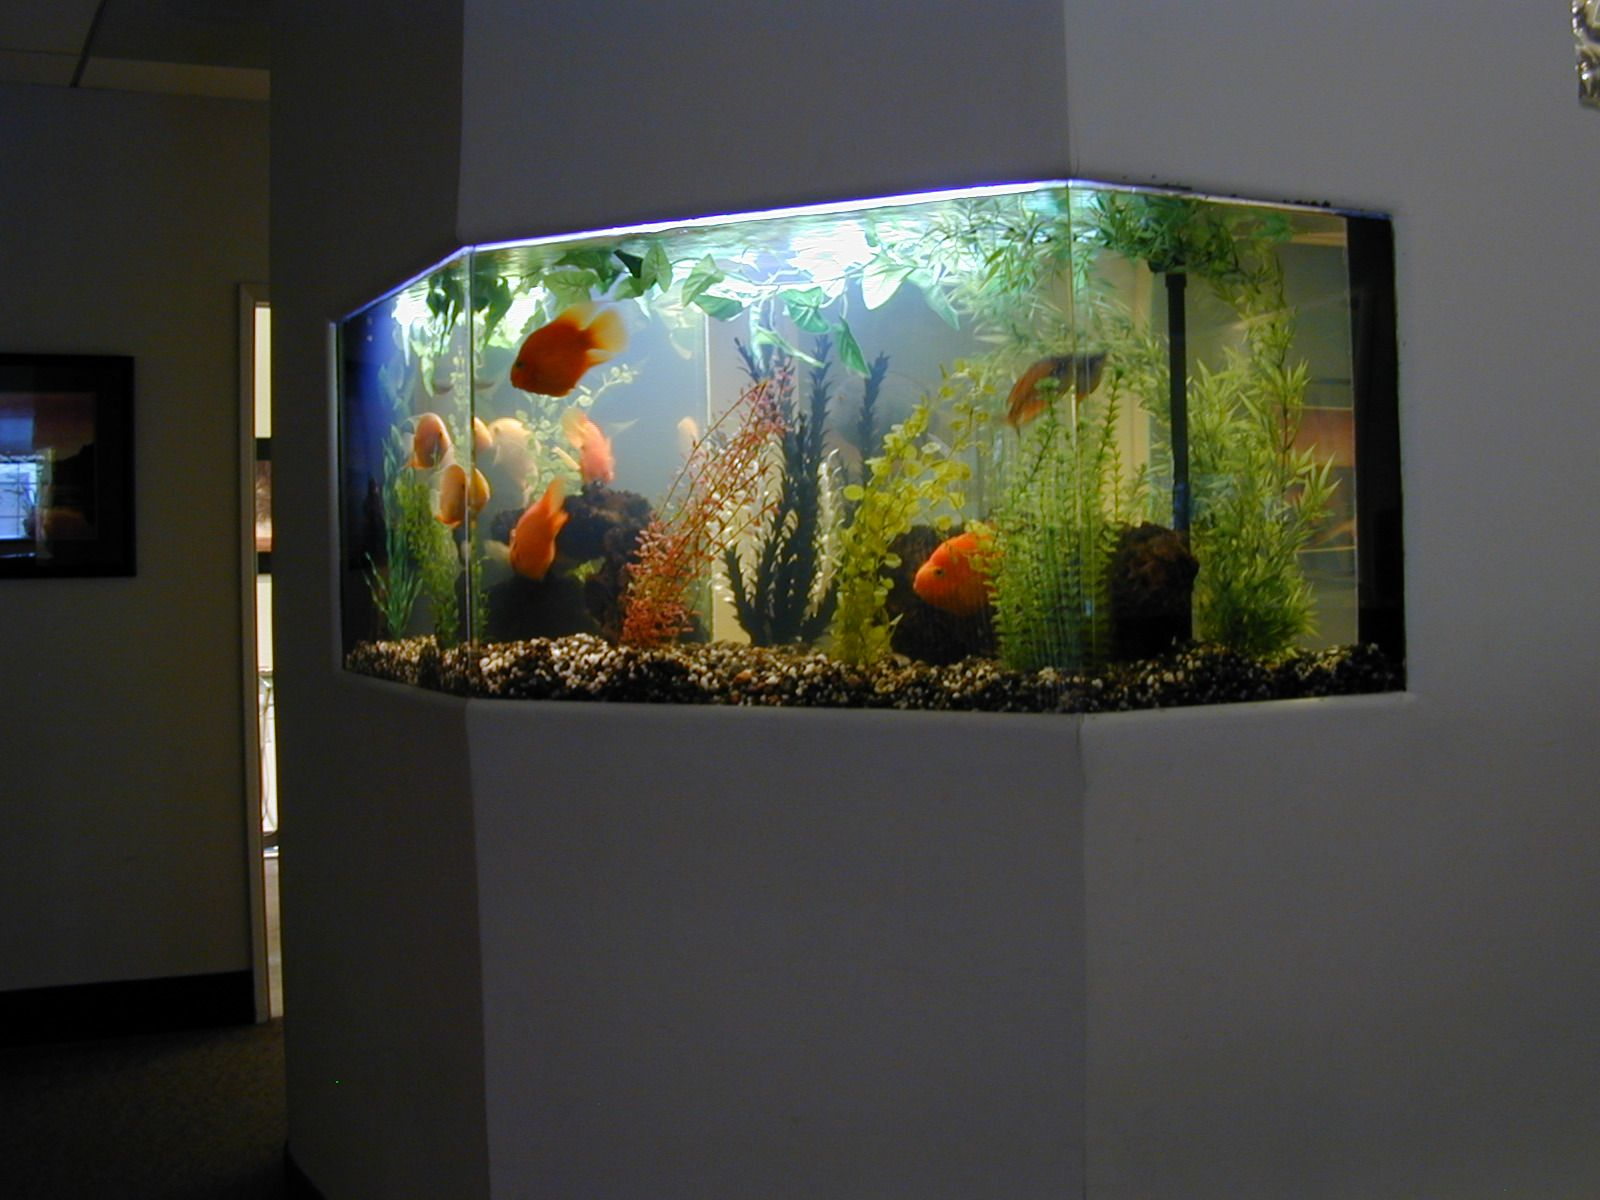 Fish aquarium in downtown toronto - Fish Tanks